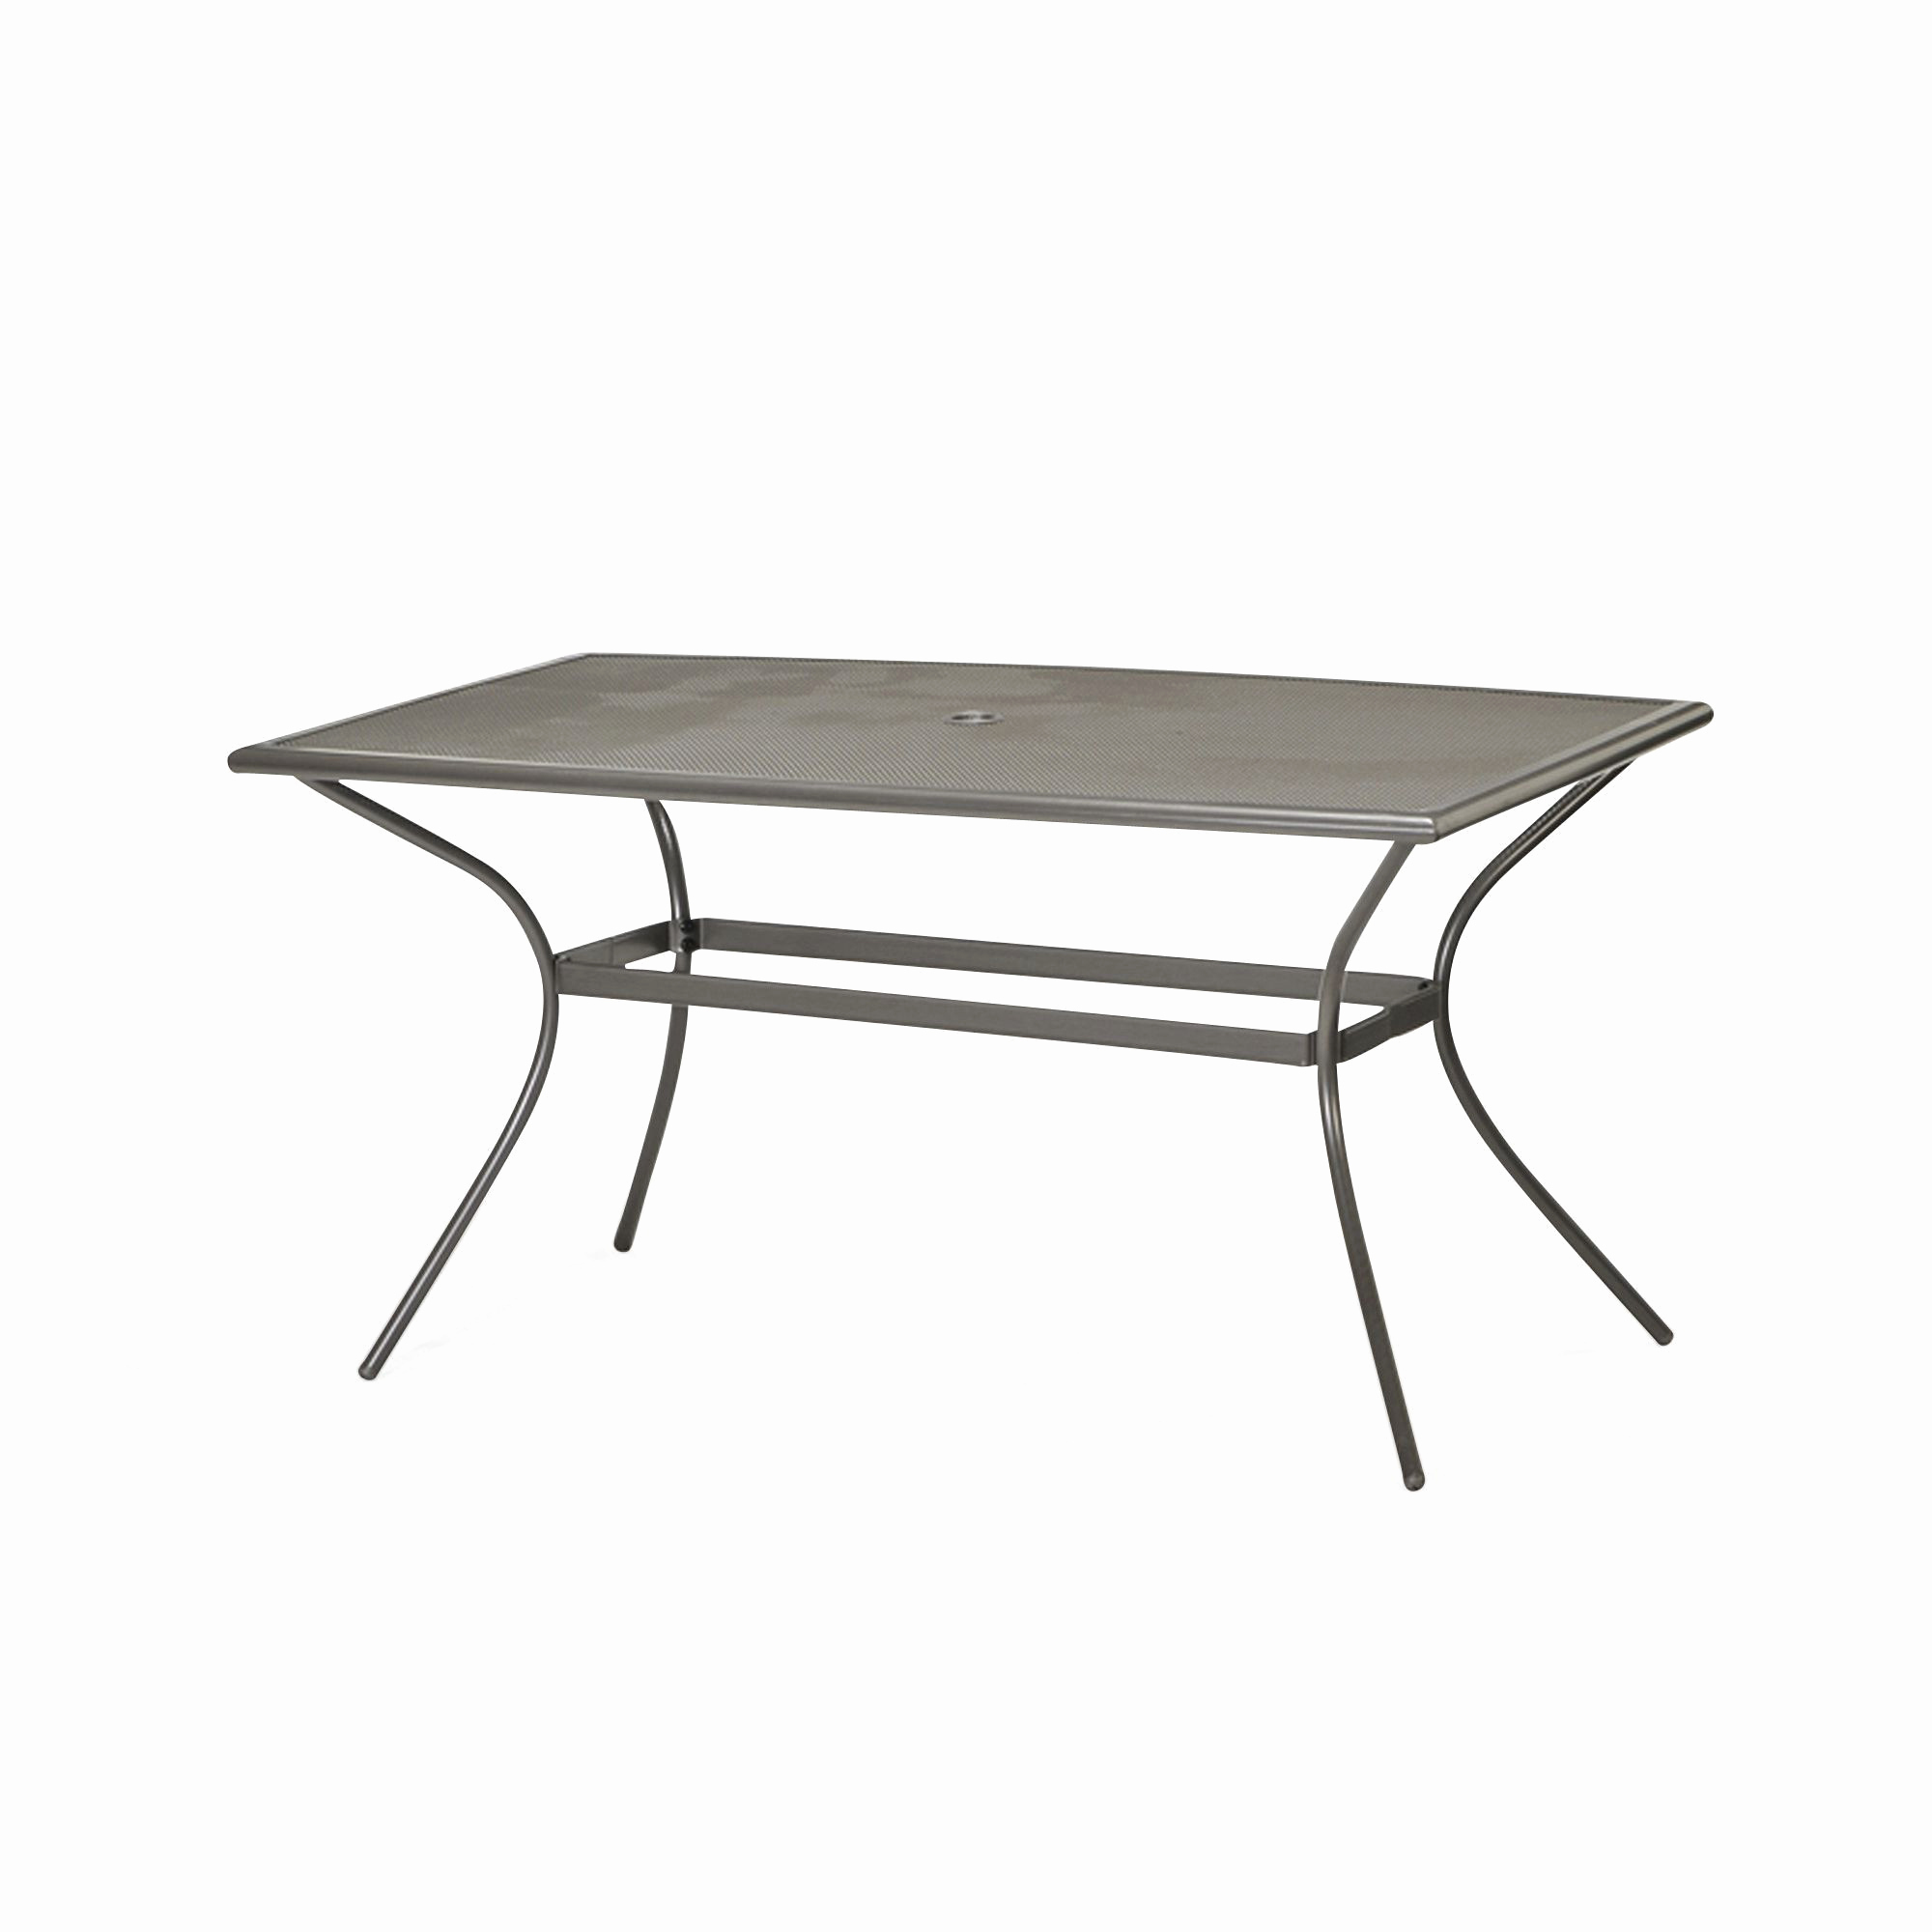 Table Jardin Gifi Inspirant Images Gifi Table Jardin Meilleur De Table De Jardin Gifi Aussi